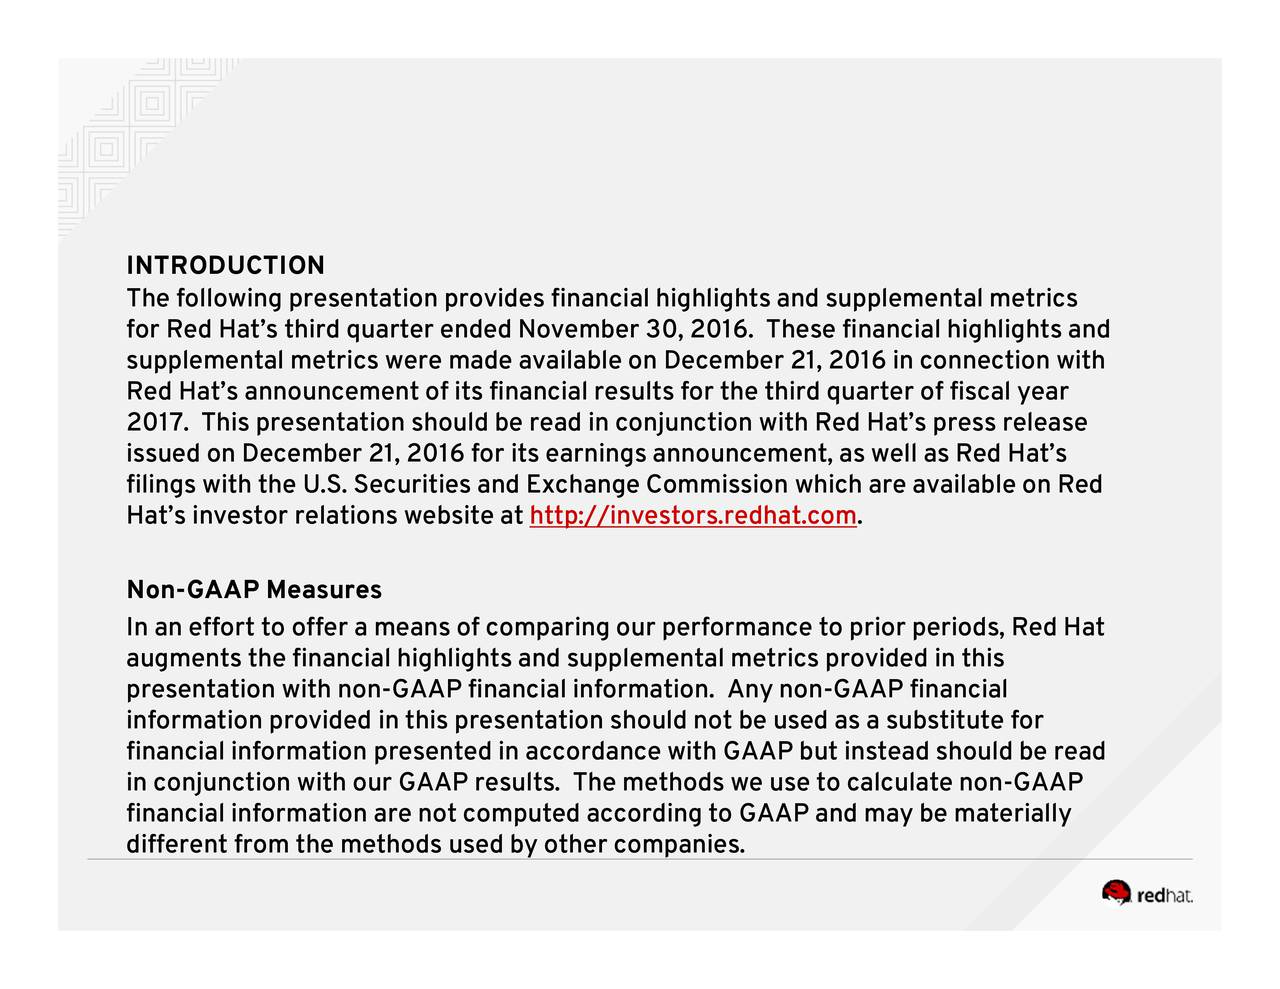 Dets for the third quarter of fiscal year gs announcement, as well as Red Hats conjunction withg our performance to prior periods, Red Hatnon-GAAP ange Commission information. Any non-GAAP financial http://investors.redhat.com INTThfooRlRTiOH1s.iirdsouirenstorrefatffa6hifosi0fatciednfherpreeresnaassgetriou